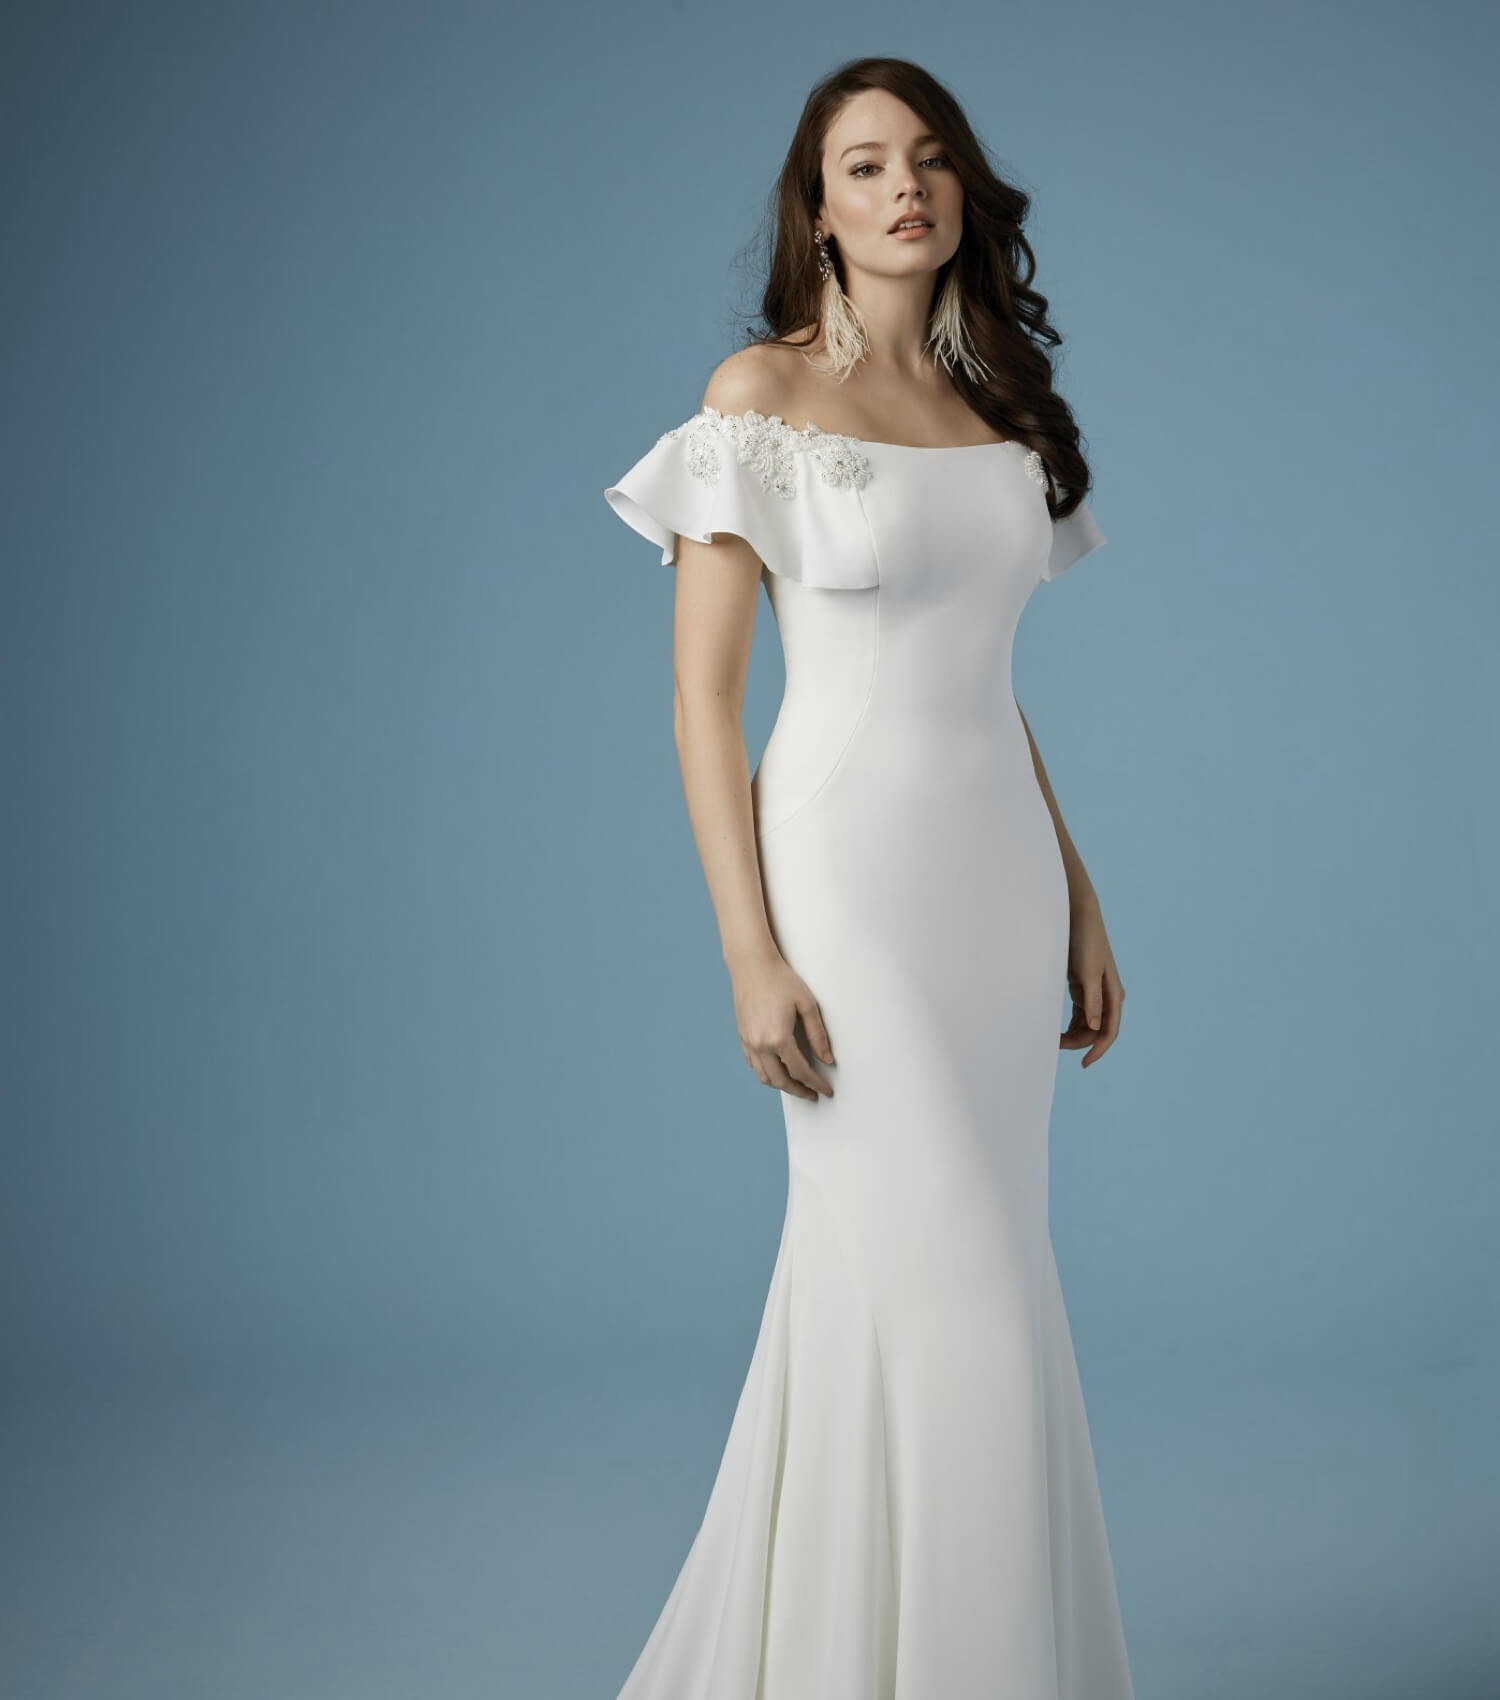 The Exquisite Bride Pittsburgh Allegheny Bridal Boutique,Grandmother Bride Dress Wedding Pant Suits For Grandmothers